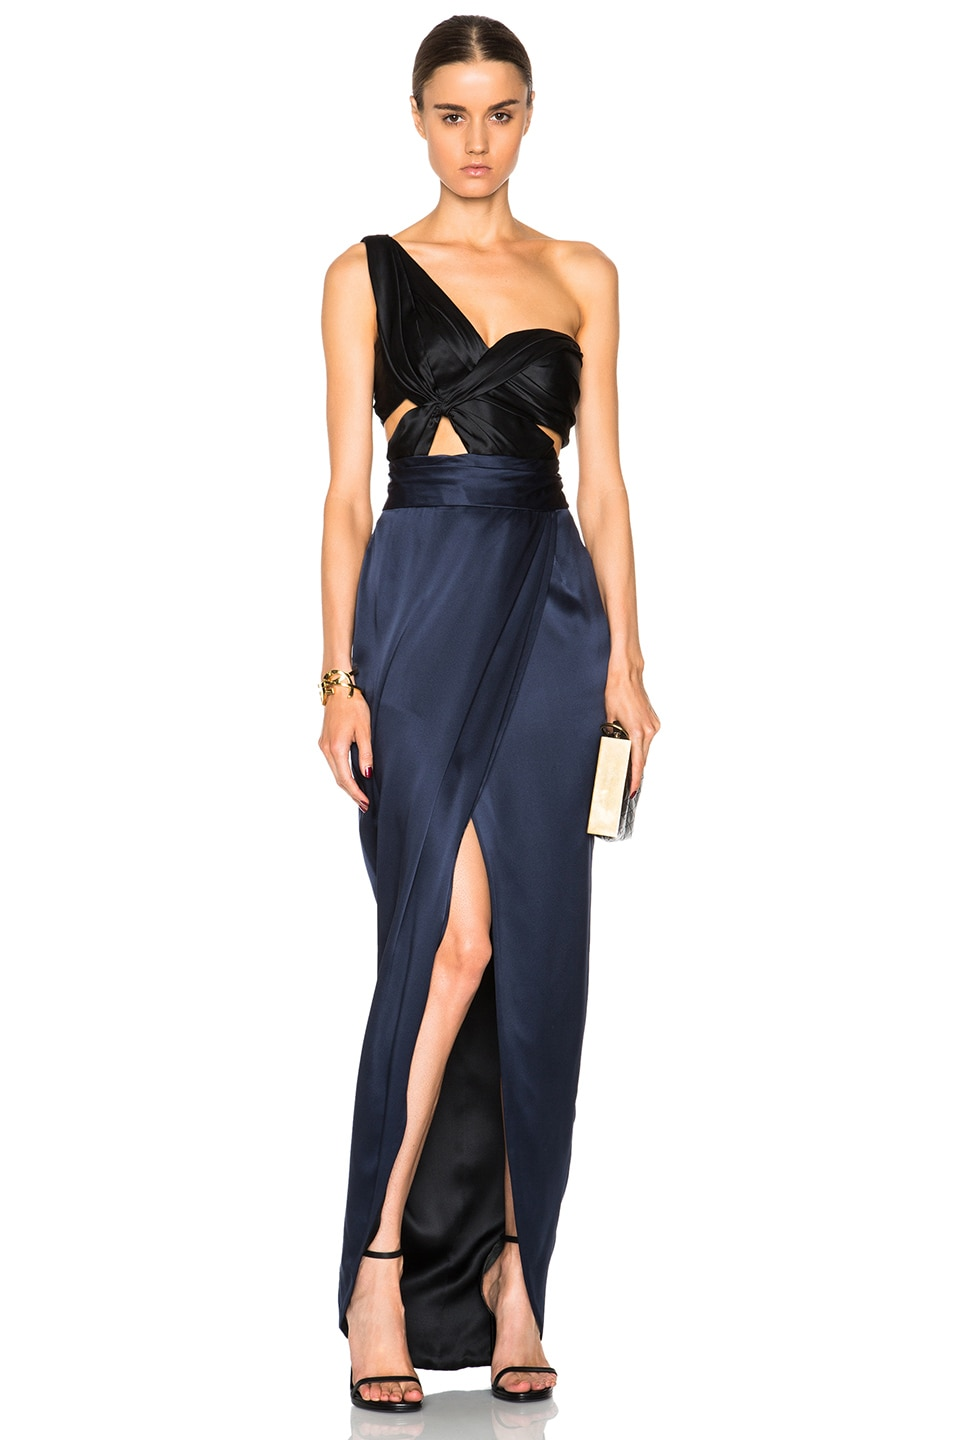 J. Mendel One Shoulder Drape Charmeuse Gown in Black & Navy | FWRD